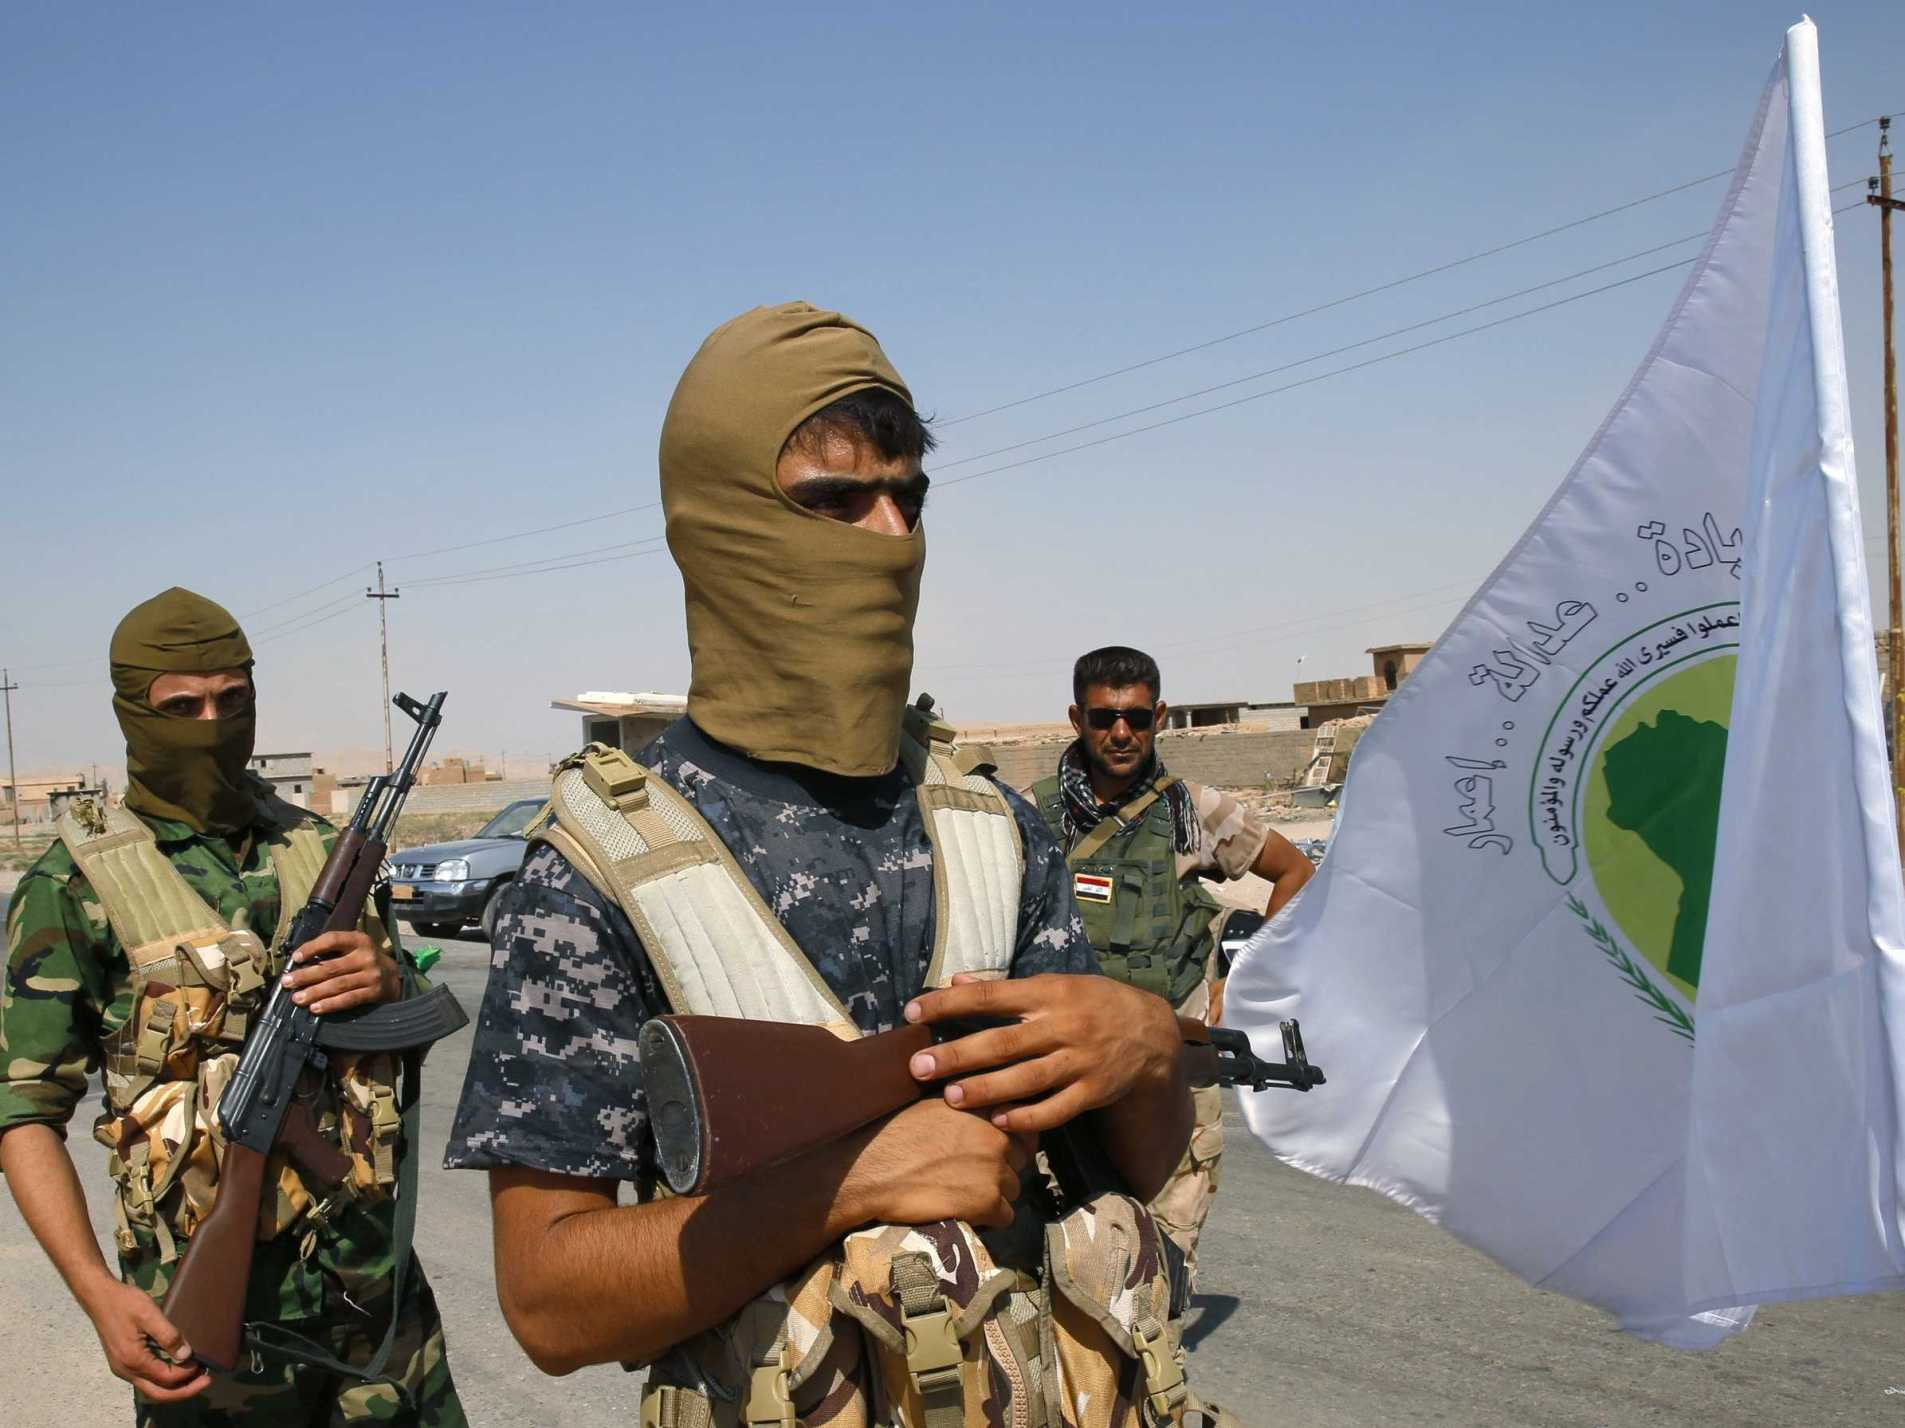 the-growing-power-of-iranian-proxy-militias-in-iraq-and-syria-poses-problems-for-the-us